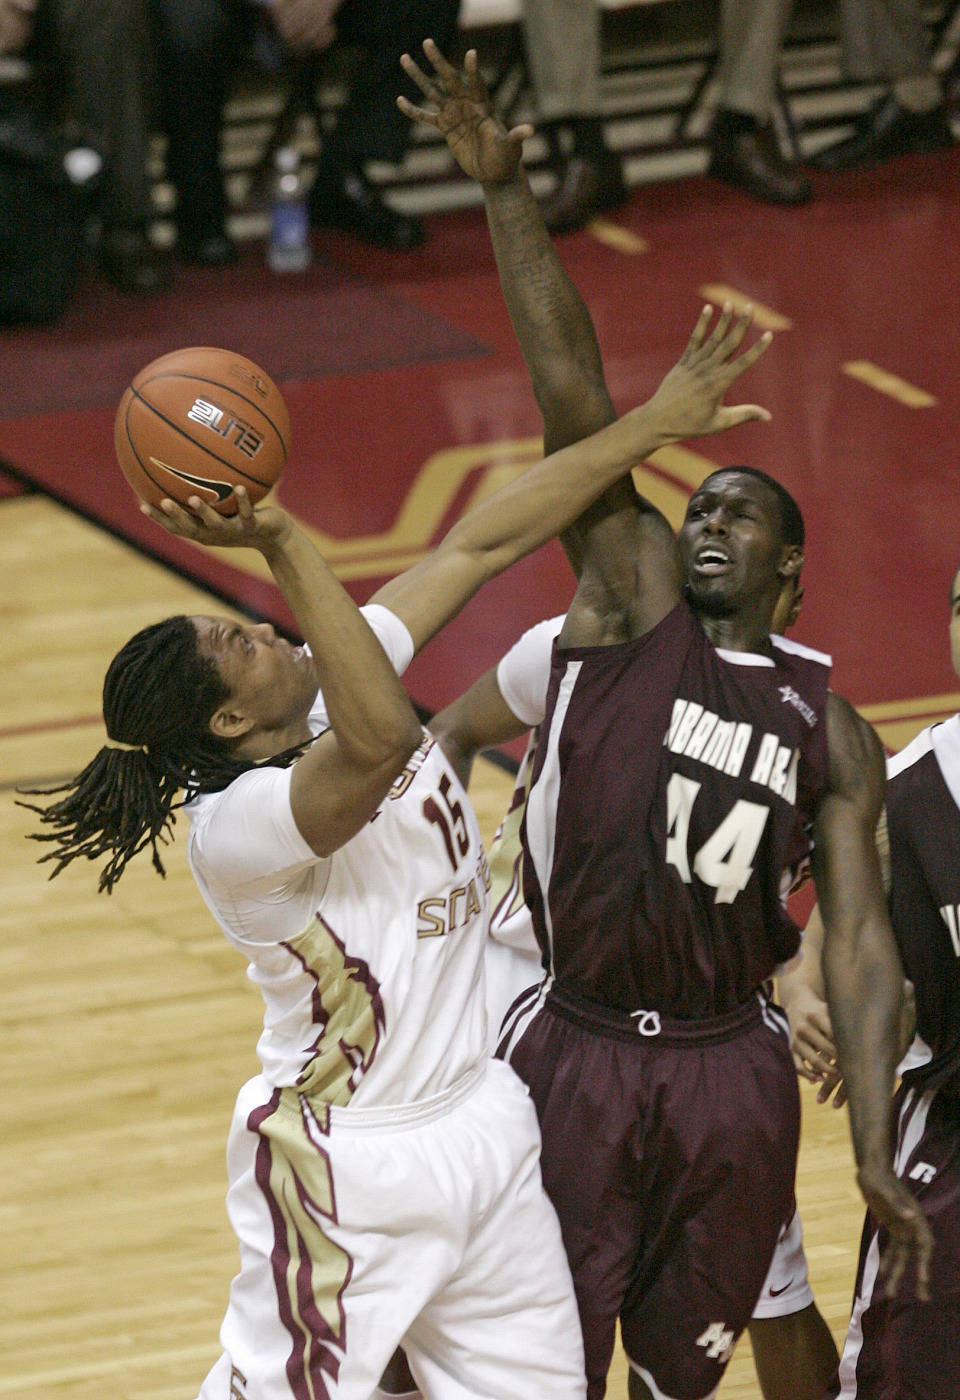 Florida State's Terrance Shannon,l eft, shoots over the defense of Alabama A&M's Jonathan Inman during the second half of an NCAA college basketball game on Thursday, Dec. 31, 2009, in Tallahassee, Fla. Florida State won 81-34. (AP Photo/Steve Cannon)